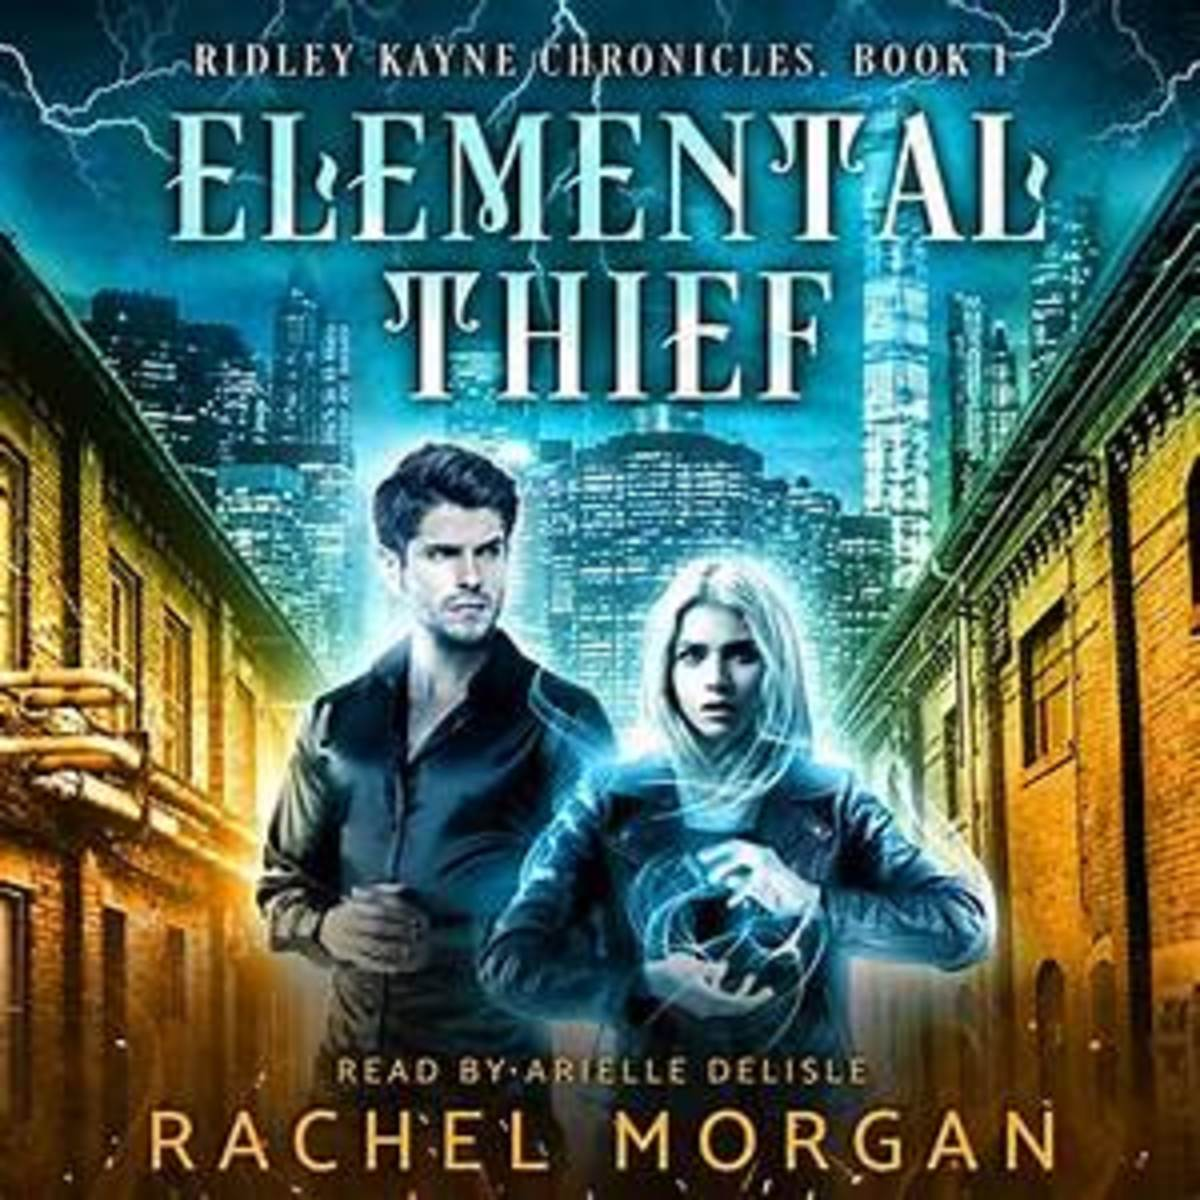 Elemental Thief (Ridley Kayne Chronicles) by Rachel Morgan